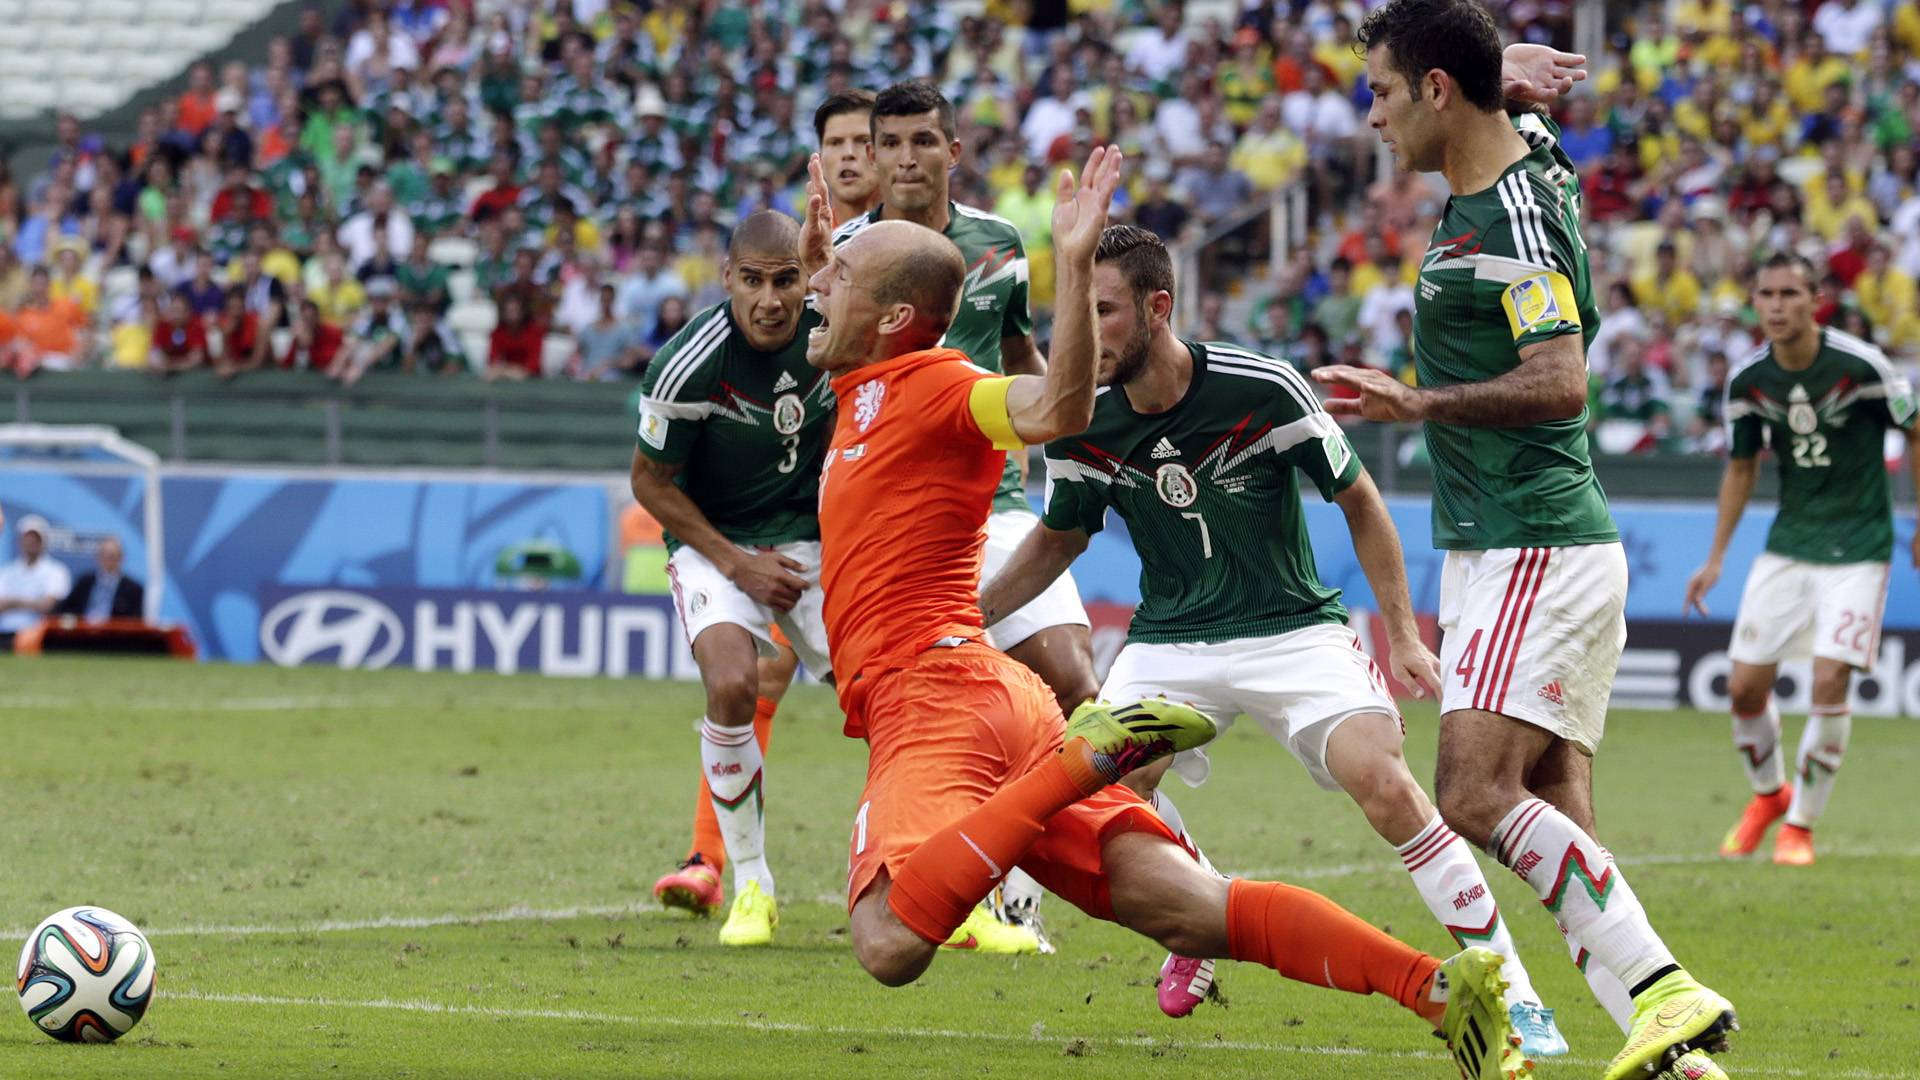 Netherlands' Arjen Robben, center, goes down to win a penalty during the World Cup round of 16 soccer match between the Netherlands and Mexico at the Arena Castelao in Fortaleza, Brazil, Sunday, June 29, 2014. Netherlands won the match 2-1. (AP Photo/Wong Maye-E)